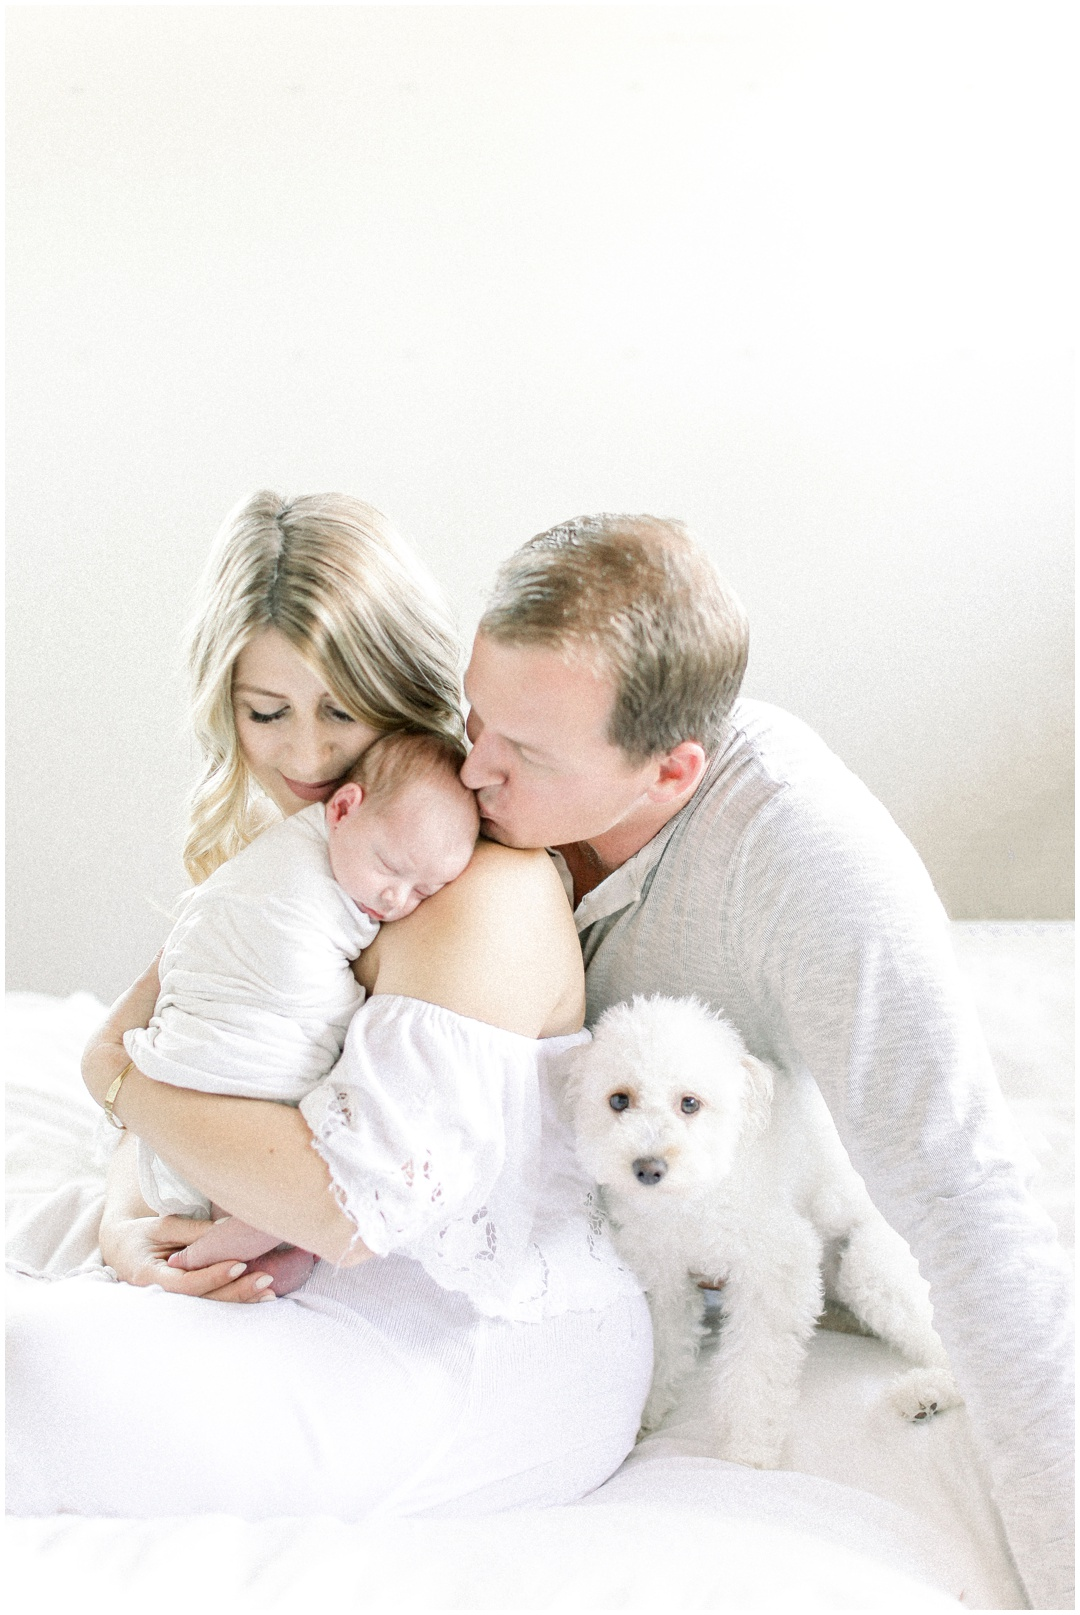 Newport_Beach_Newborn_Light_Airy_Natural_Photographer_Newport_Beach_Photographer_Orange_County_Family_Photographer_Cori_Kleckner_Photography_Huntington_Beach_Photographer_Family_OC_Newborn_Megan_Bradley_Schueneman_Charlie_Schueneman_Dean__3610.jpg